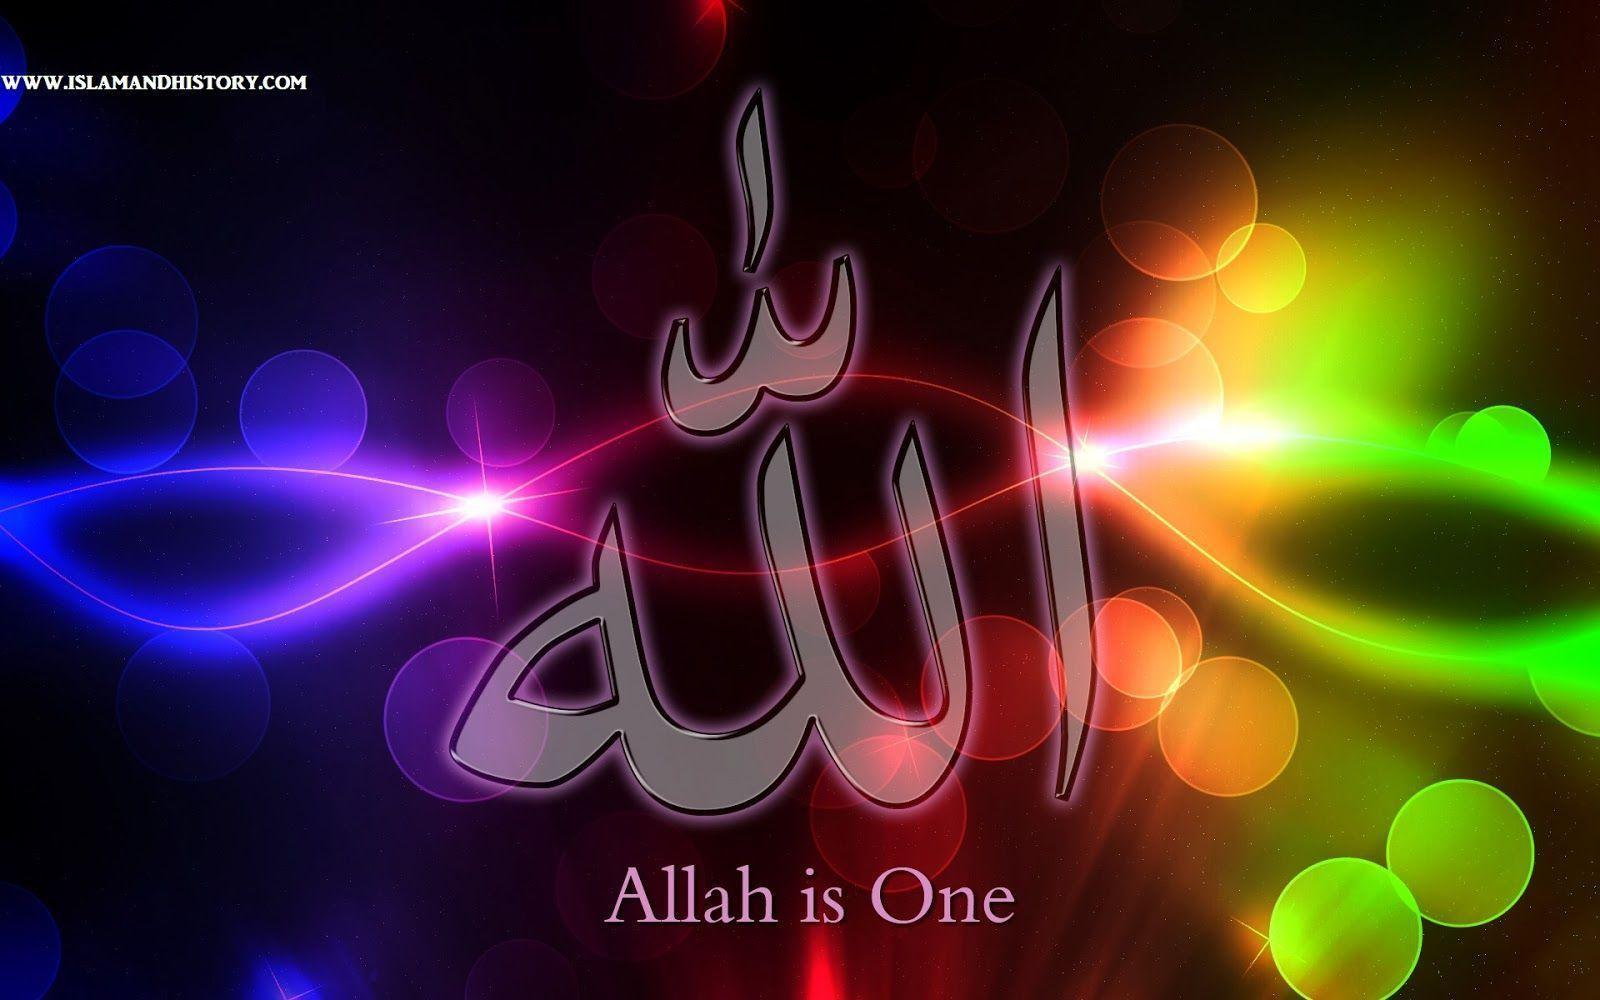 Love Wallpaper Allah : Allah Wallpapers HD 2015 - Wallpaper cave